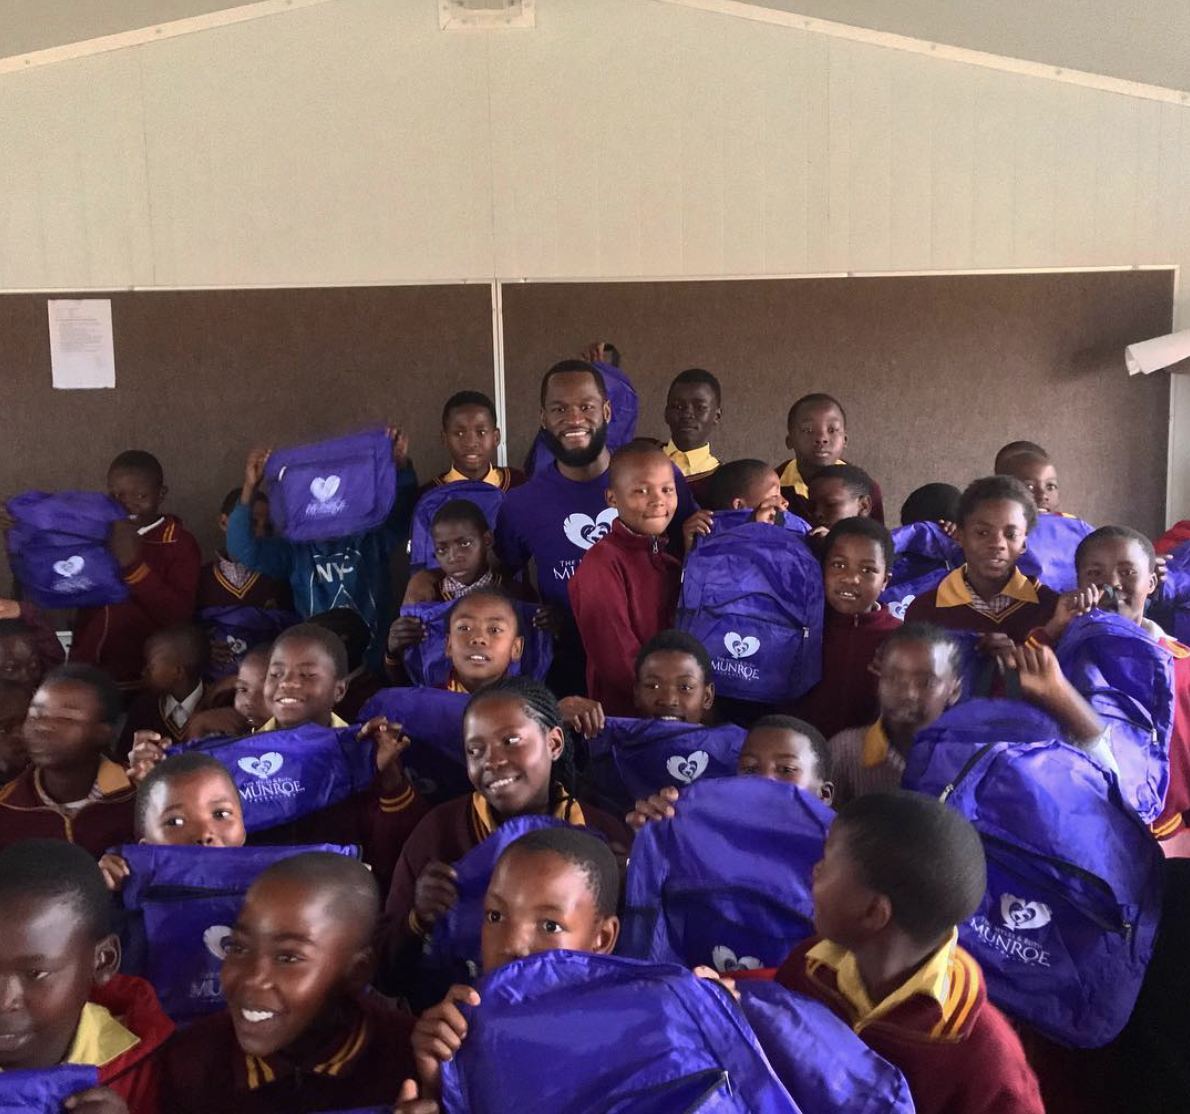 THE FOUNDATION GIVES SCHOOLS SUPPLIES & A DONATION TO TWO SCHOOLS IN JOHANNESBURG, SOUTH AFRICA